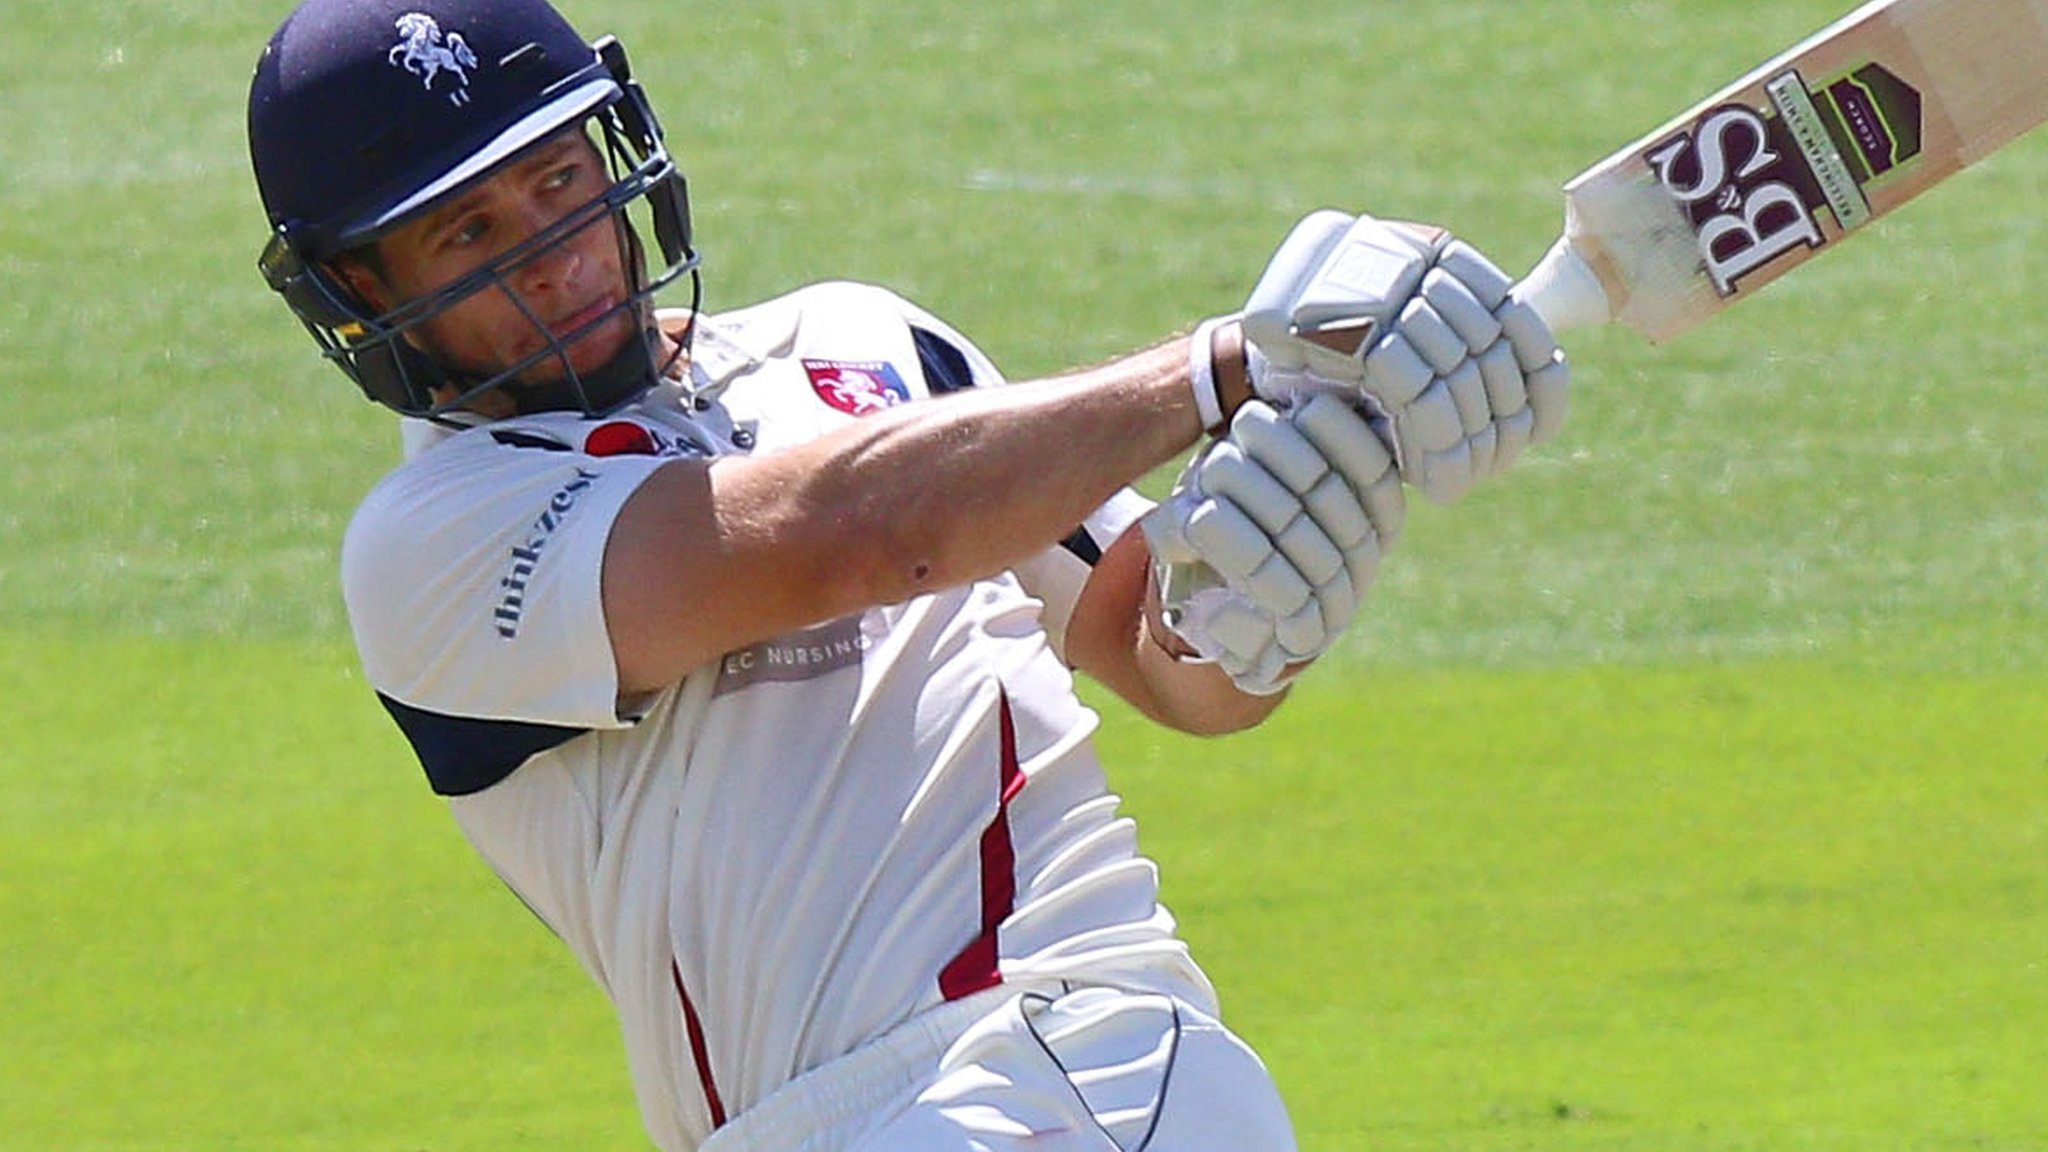 County Championship: Sean Dickson's brilliant ton helps Kent to Leicestershire win